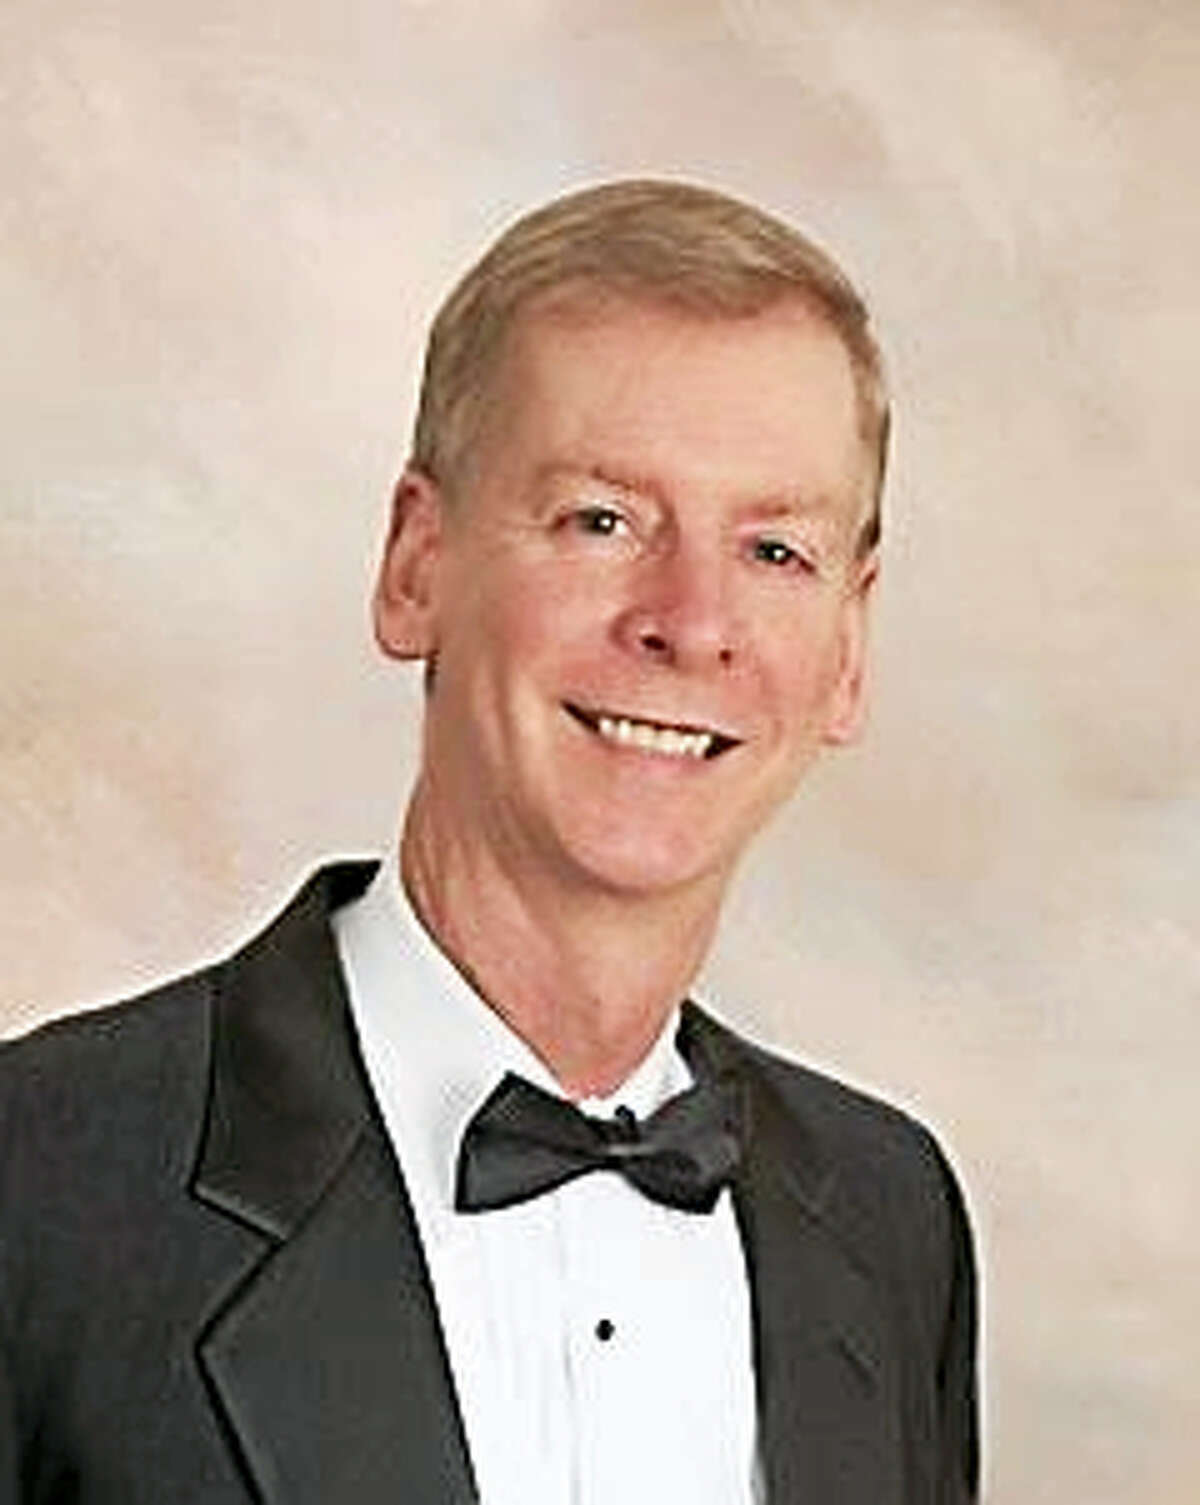 Contributed photo Organist and former director Larry Allen will join the GMChorale in its 40th season opening concert on Nov. 13.